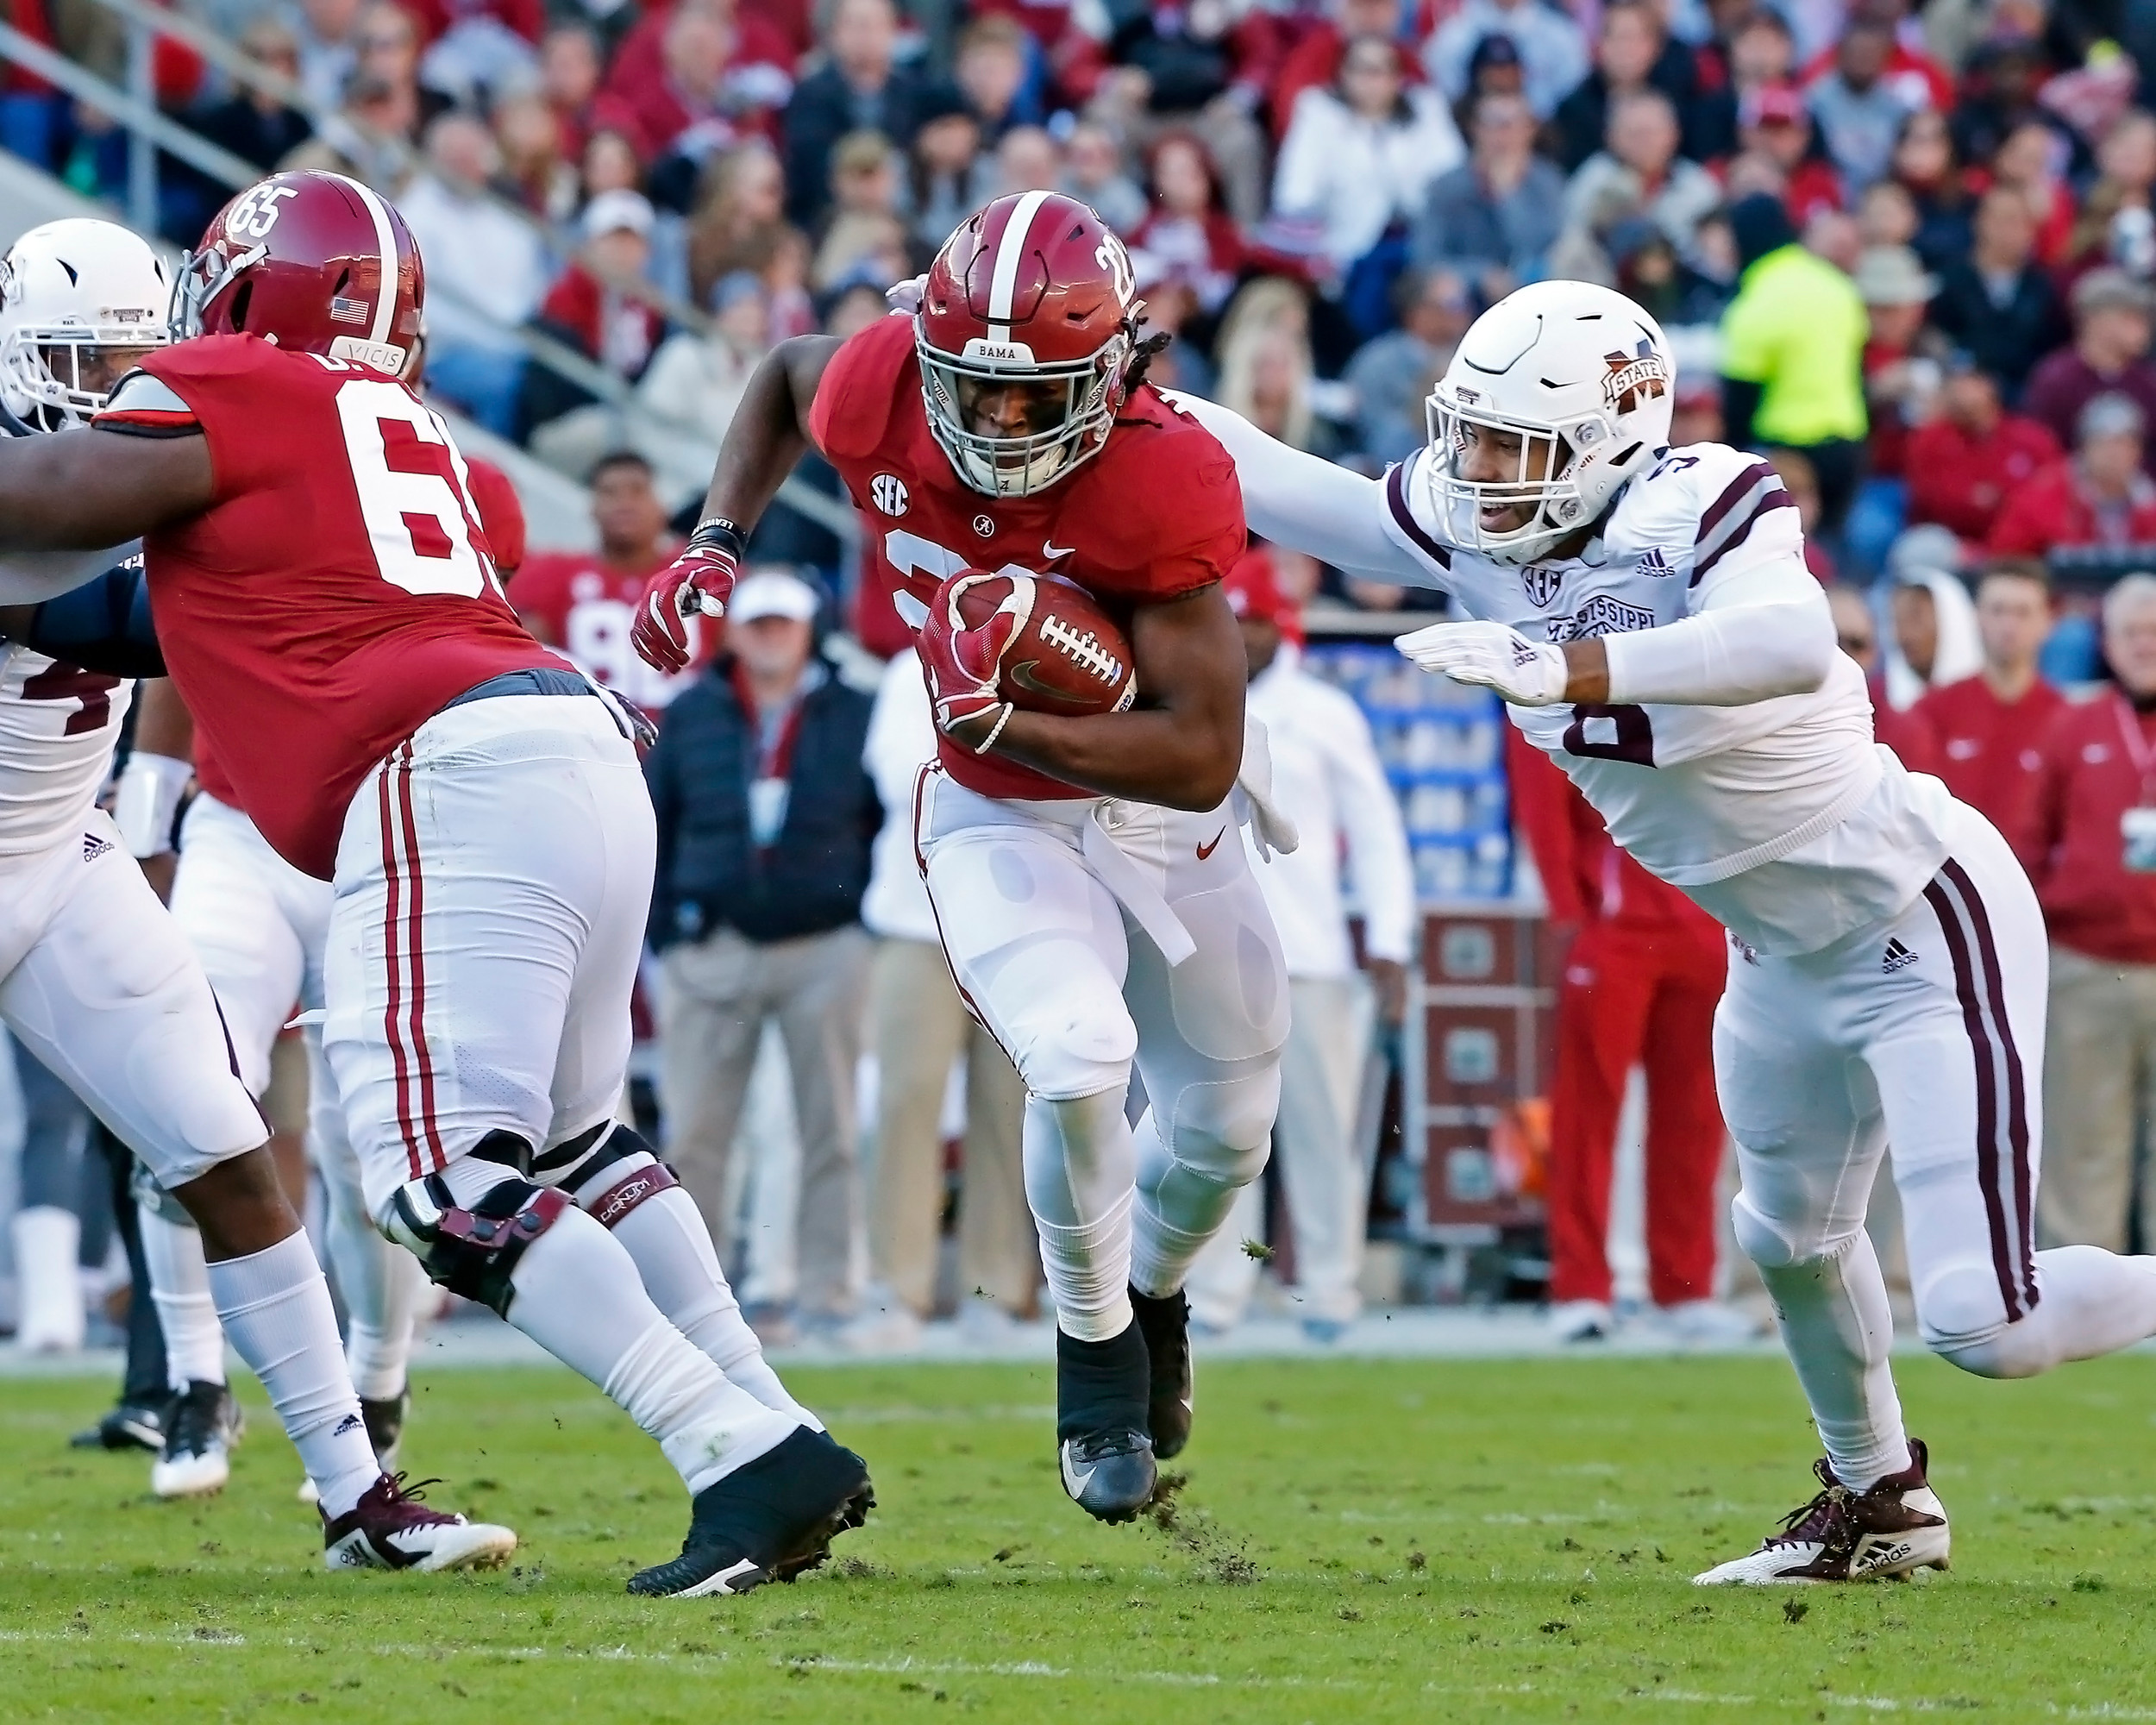 Alabama Crimson Tide running back Najee Harris (22) rushes for a first down during the game between Mississippi State and the University of Alabama at Bryant-Denny Stadium in Tuscaloosa, Al. Credit: Jason Clark / Daily Mountain Eagle